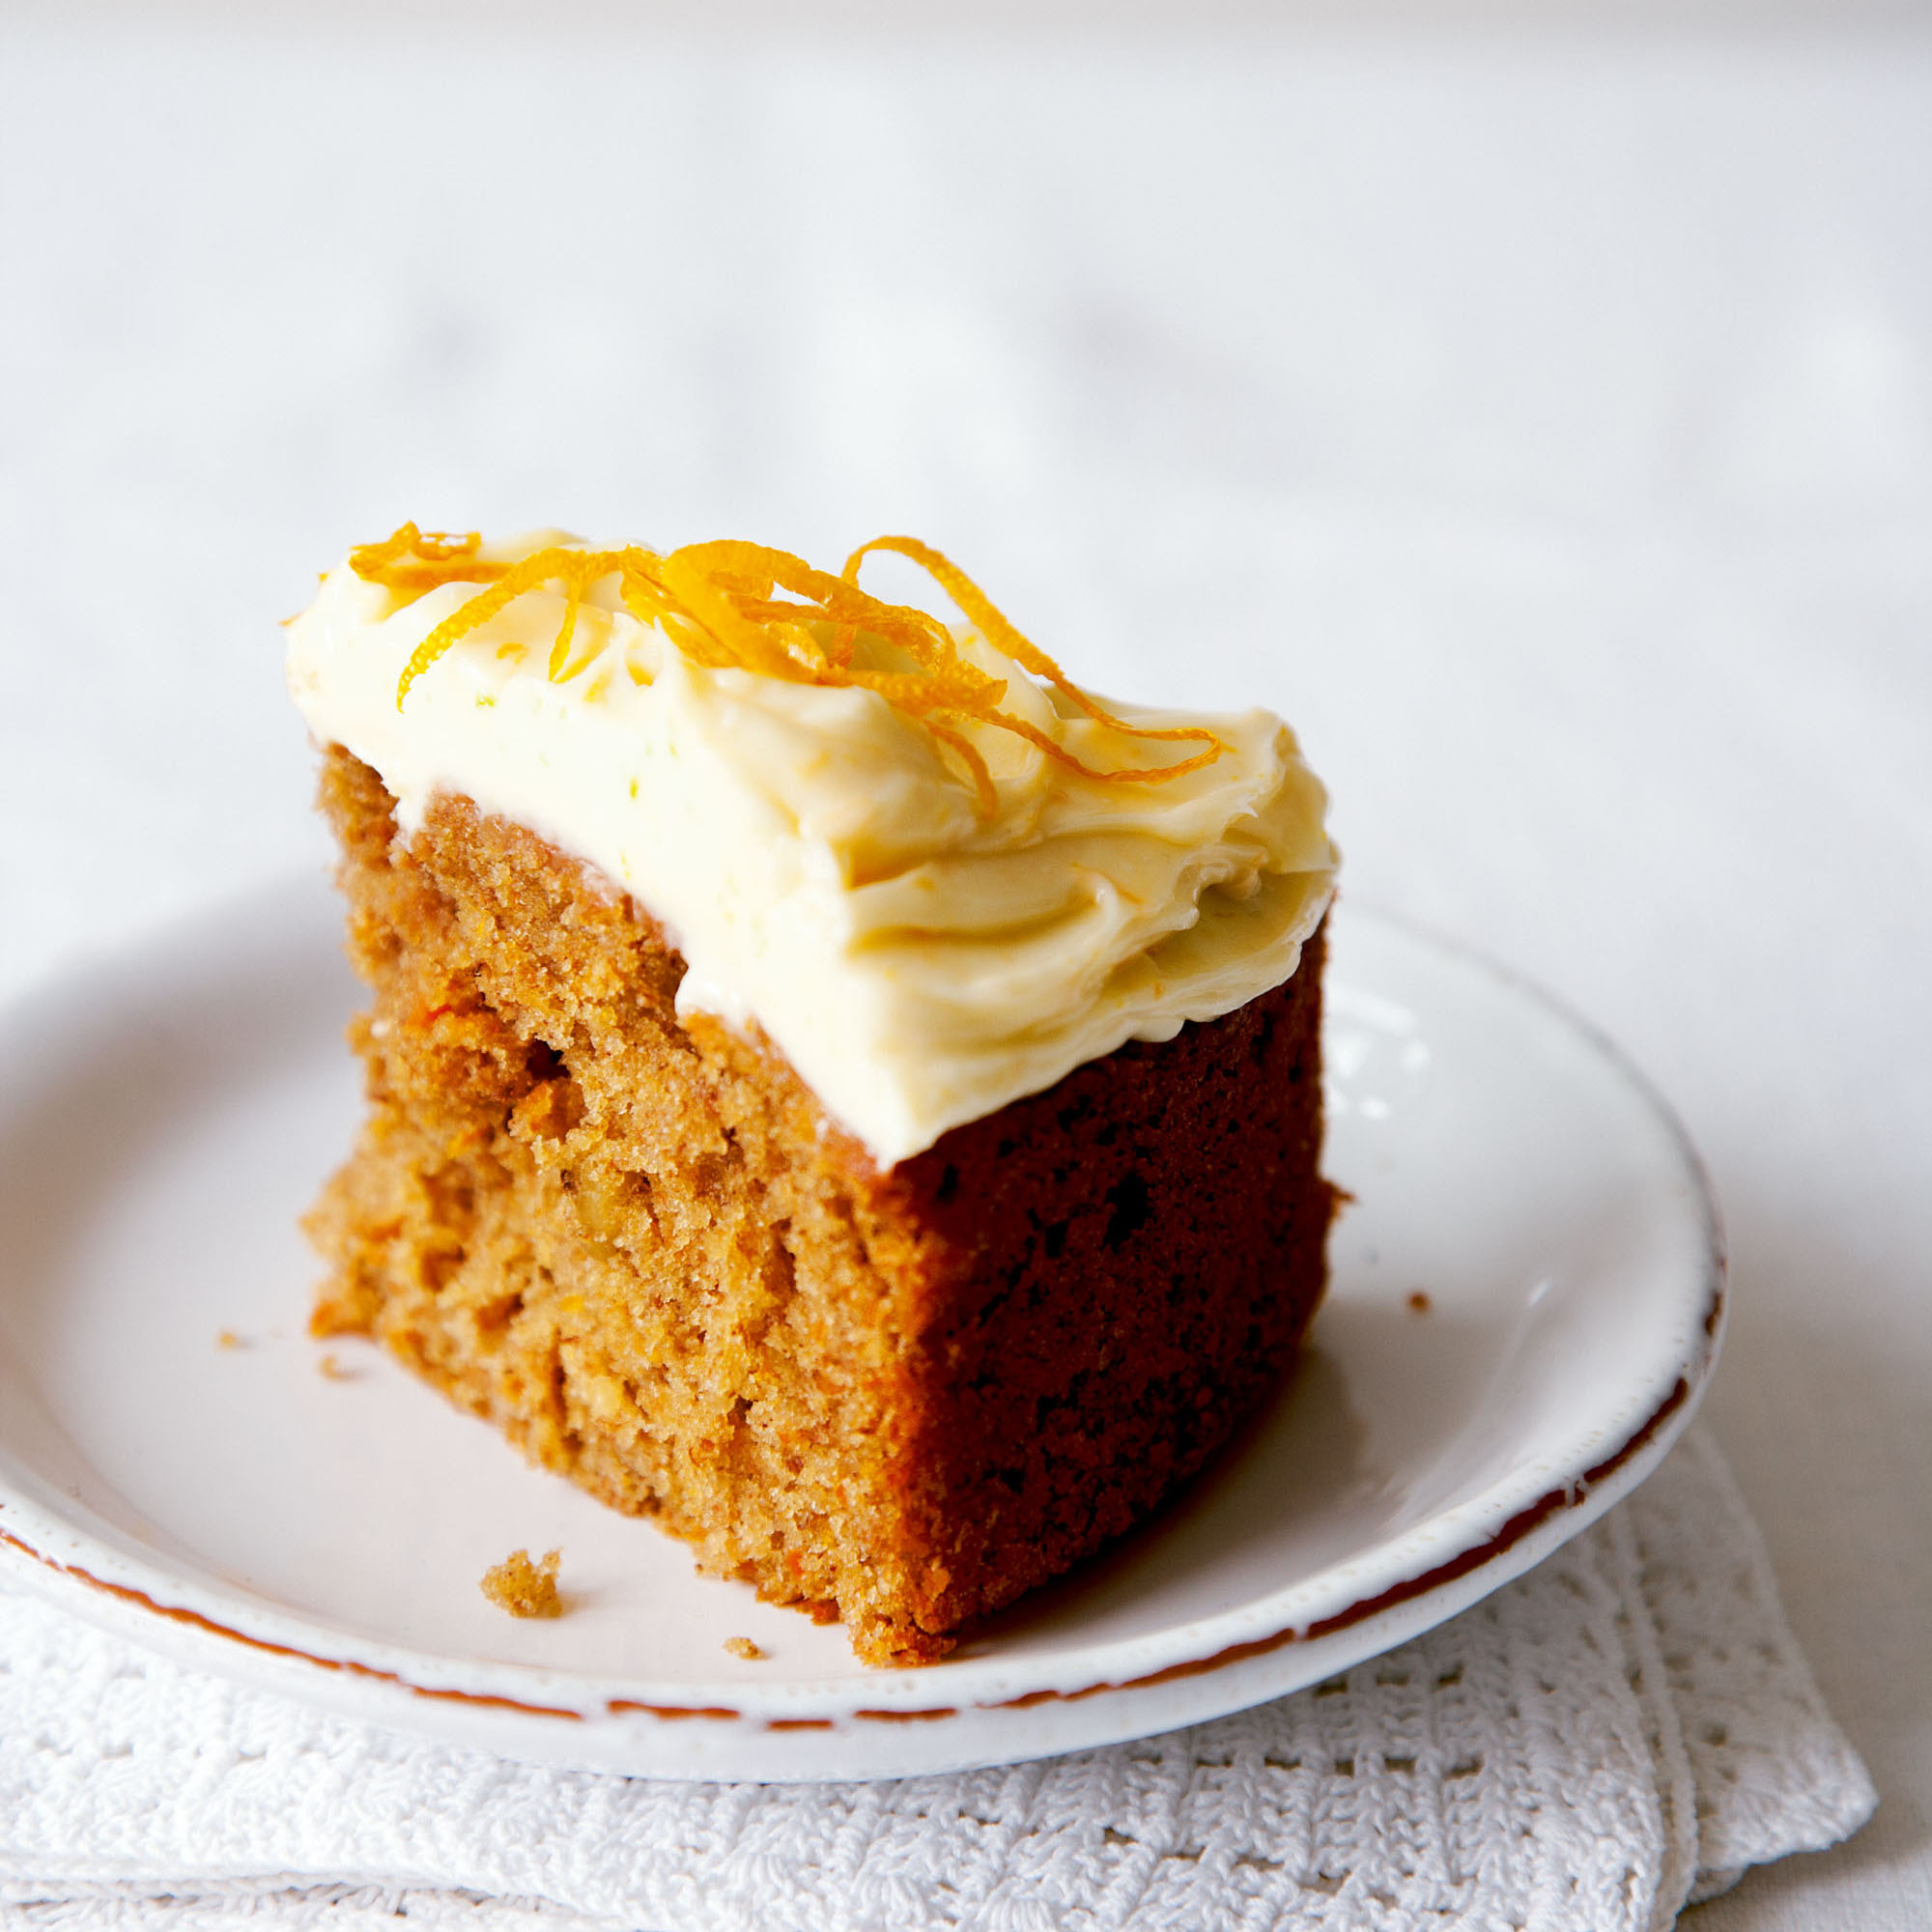 Carrot Cake Recipe With Pineapple And Cream Cheese Icing